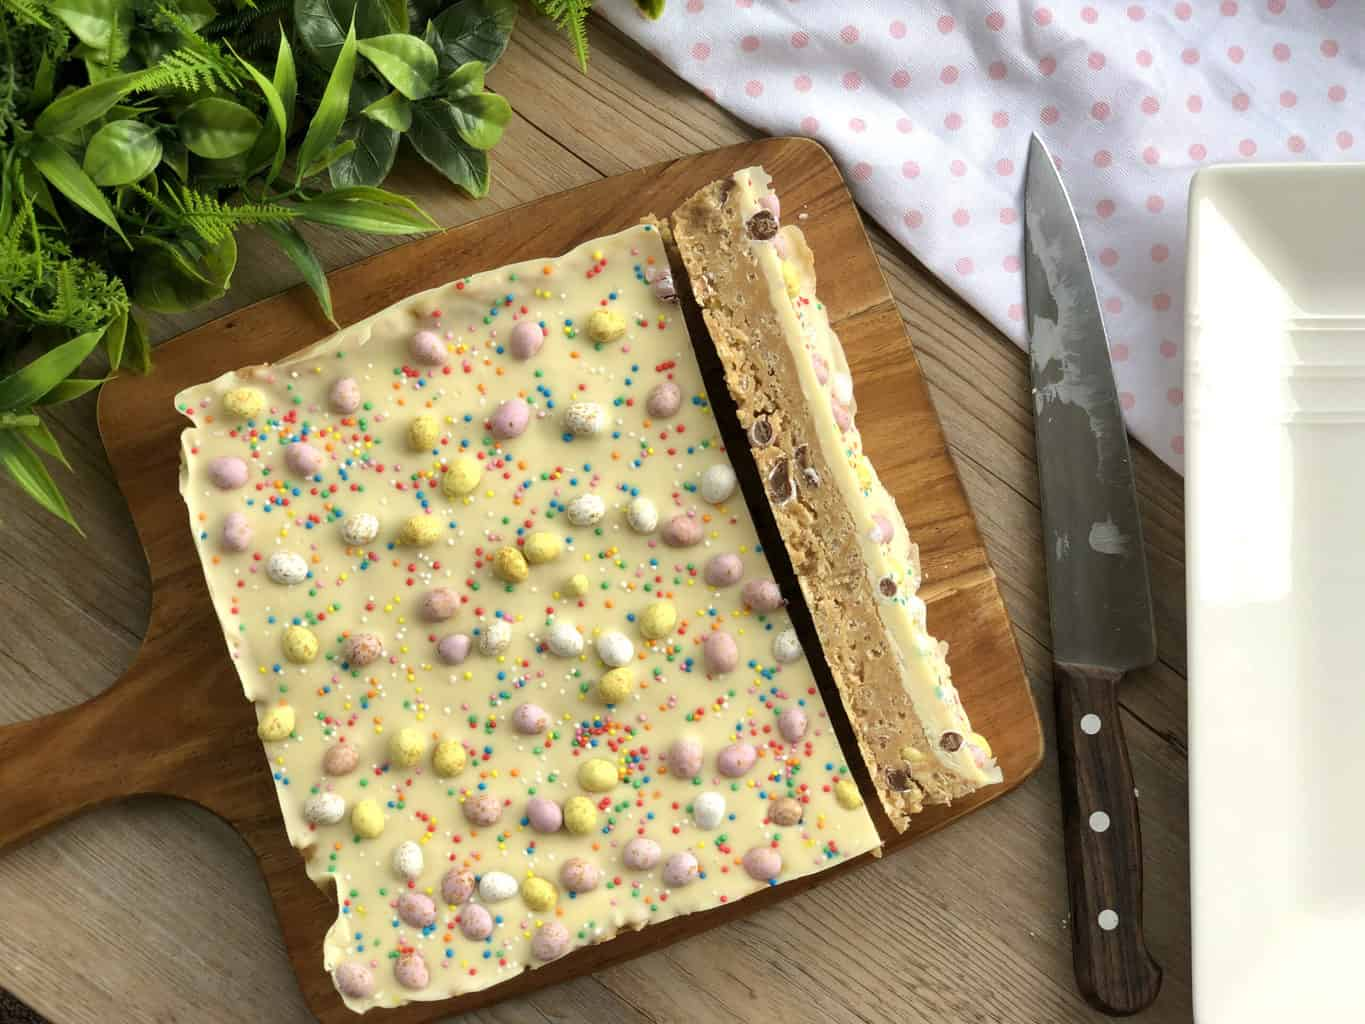 Slice of No Bake Slice with Rice Bubbles